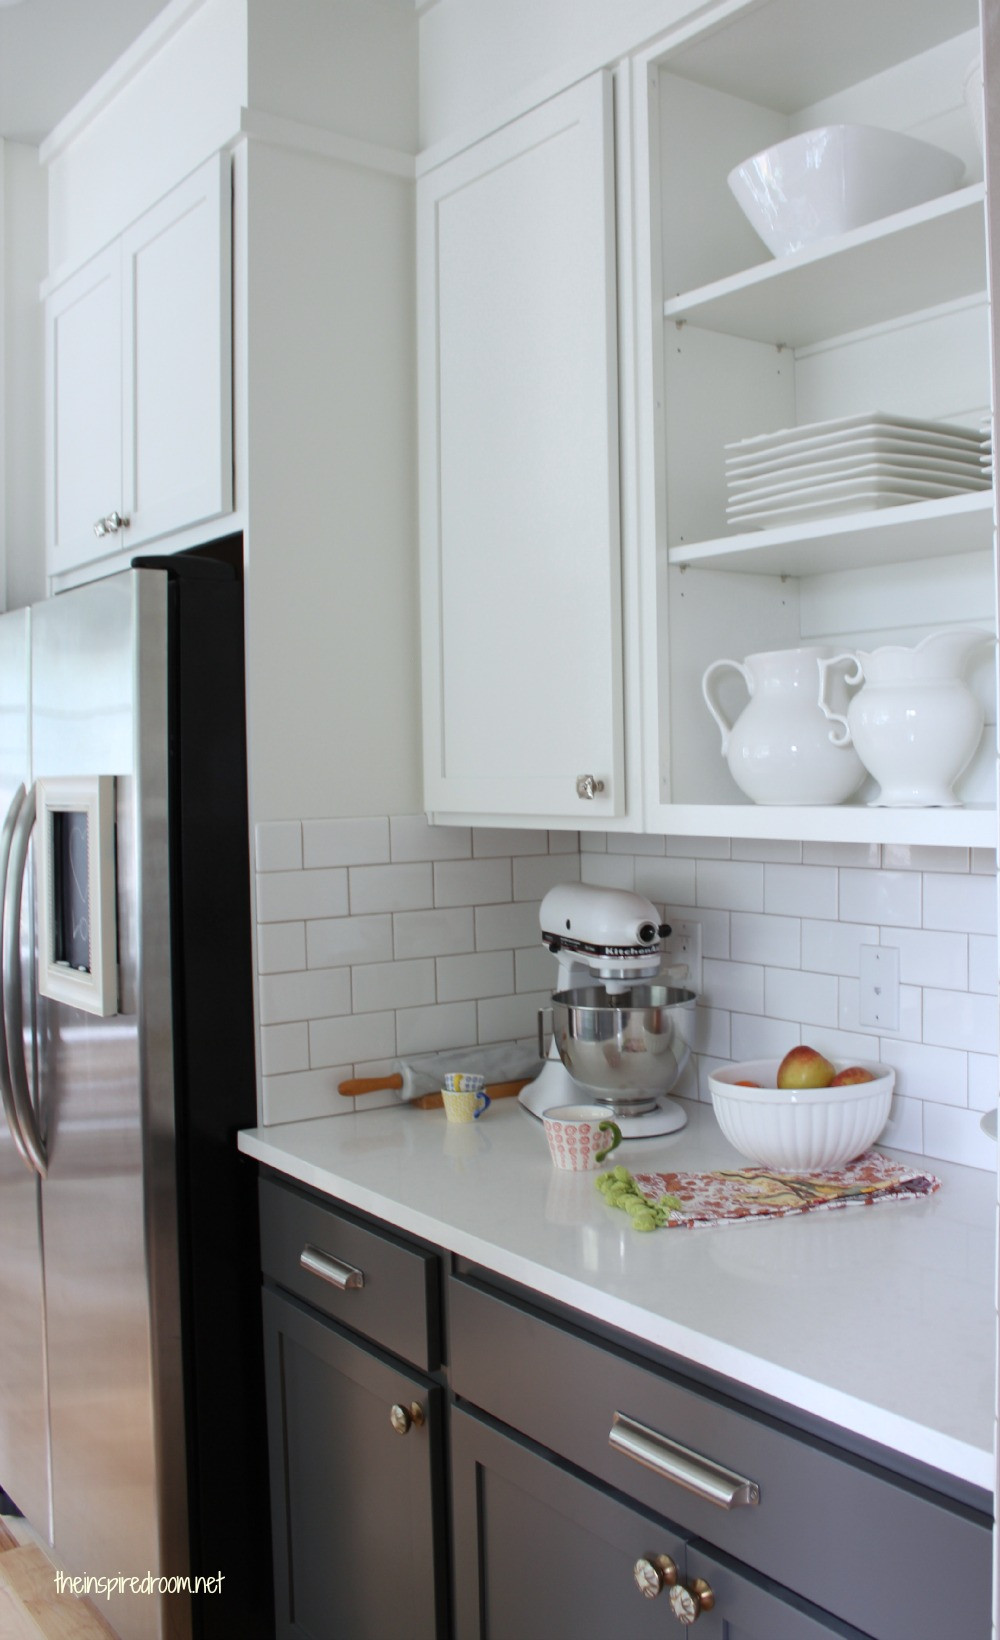 Best ideas about Upper Kitchen Cabinets . Save or Pin Kitchen Cabinet Colors Before & After The Inspired Room Now.